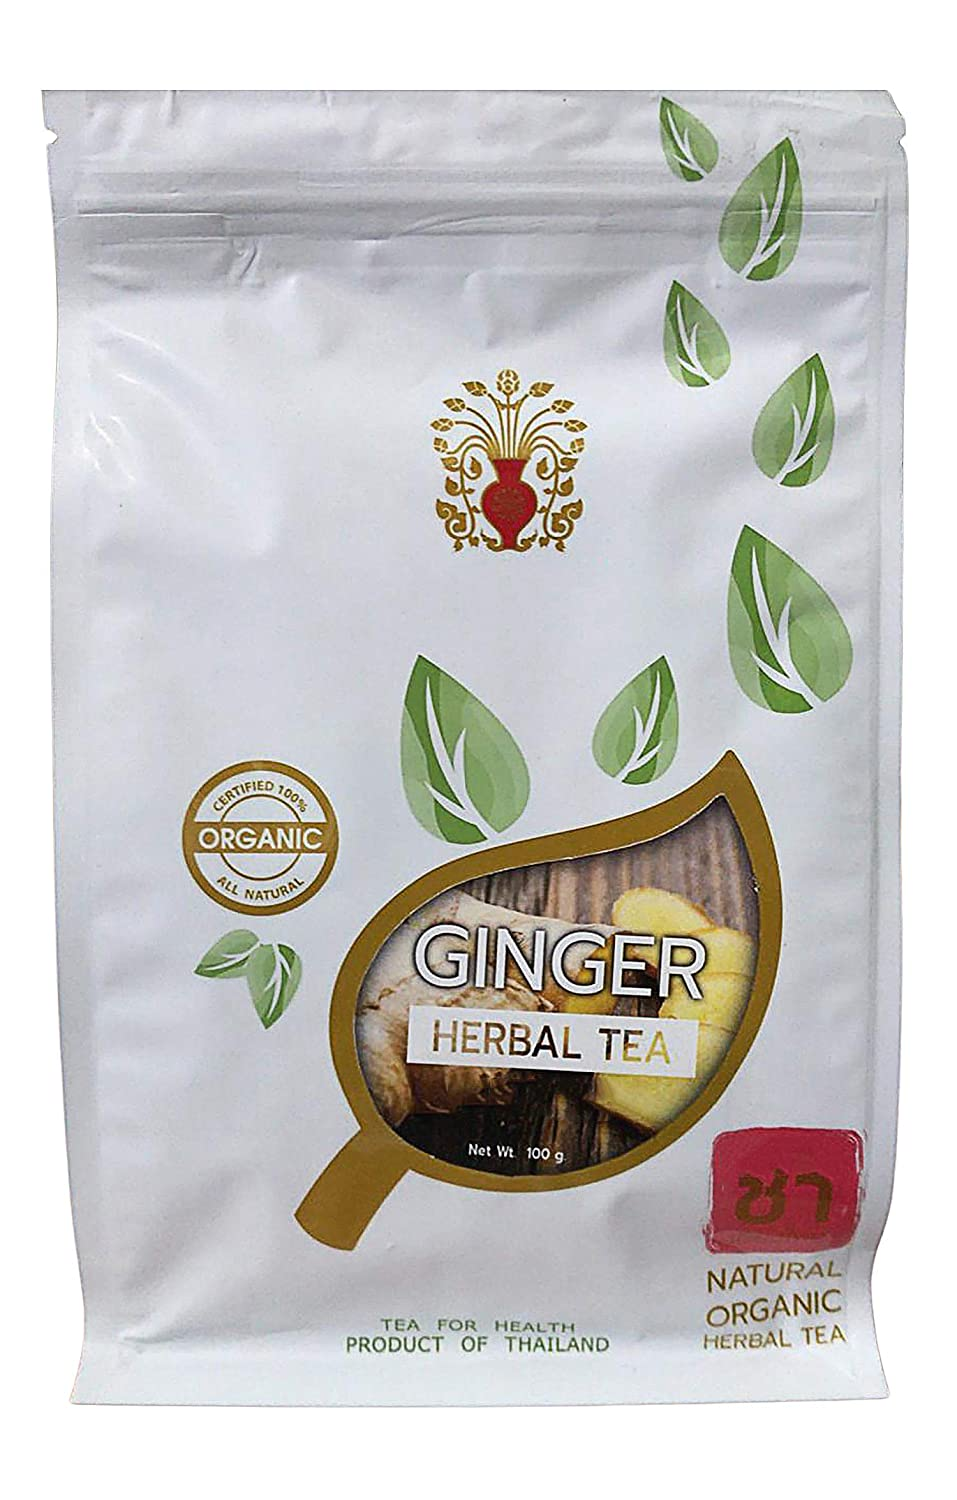 THAI Organic 100% Natural Ginger Tea 100 g. Root Ginger Herbal Tea, Promotes Healthy Digestion & Immunity, Caffeine Free, Ginger Tea From Thailand, High BENEFITS Food Ingredients for Hot & Iced tea